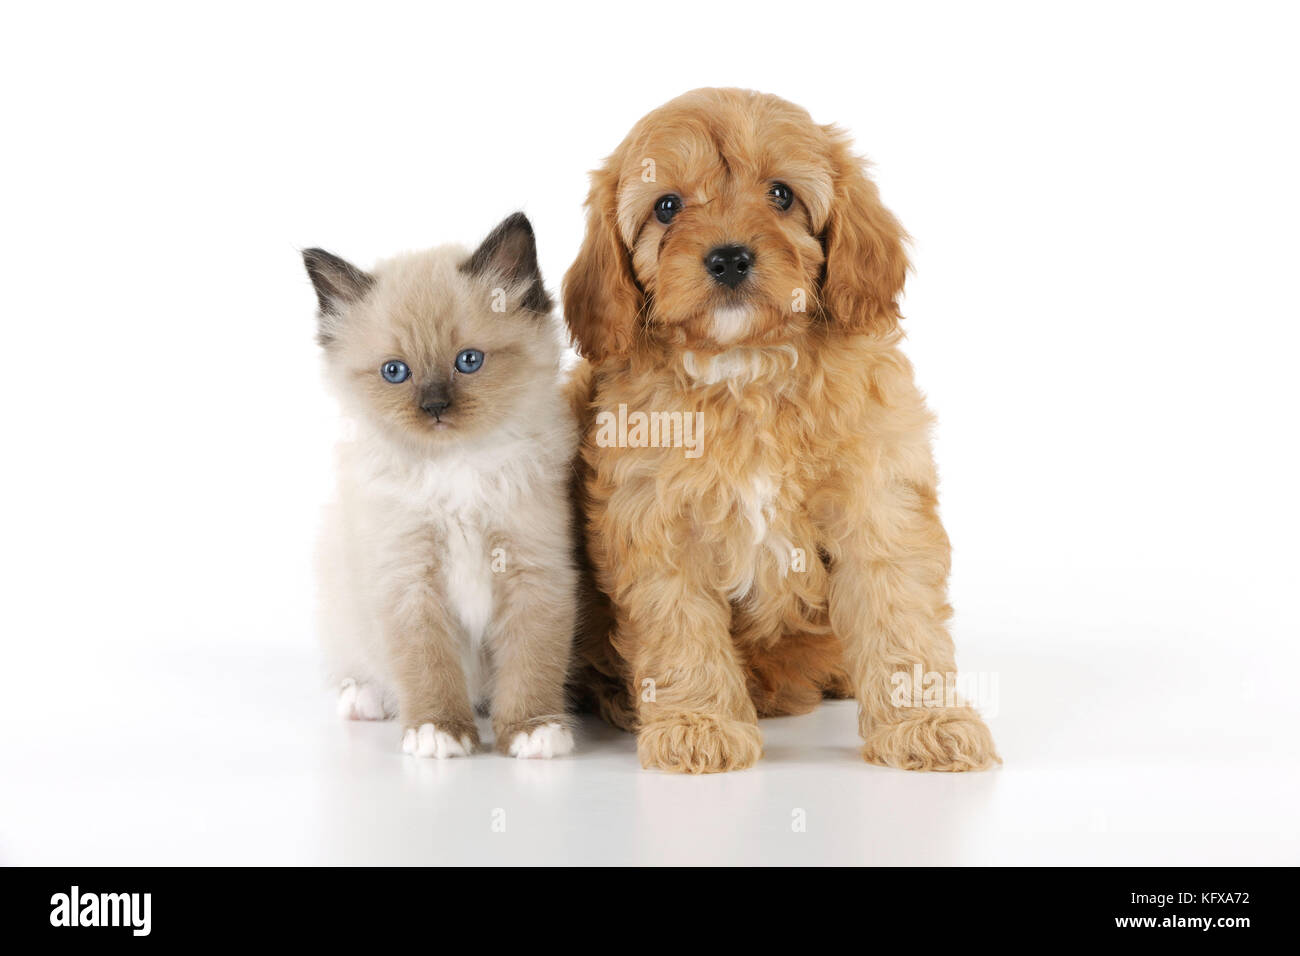 DOG. Cockerpoo puppy (Poodle X Cocker Spaniel 7wks old) with a kitten - Stock Image